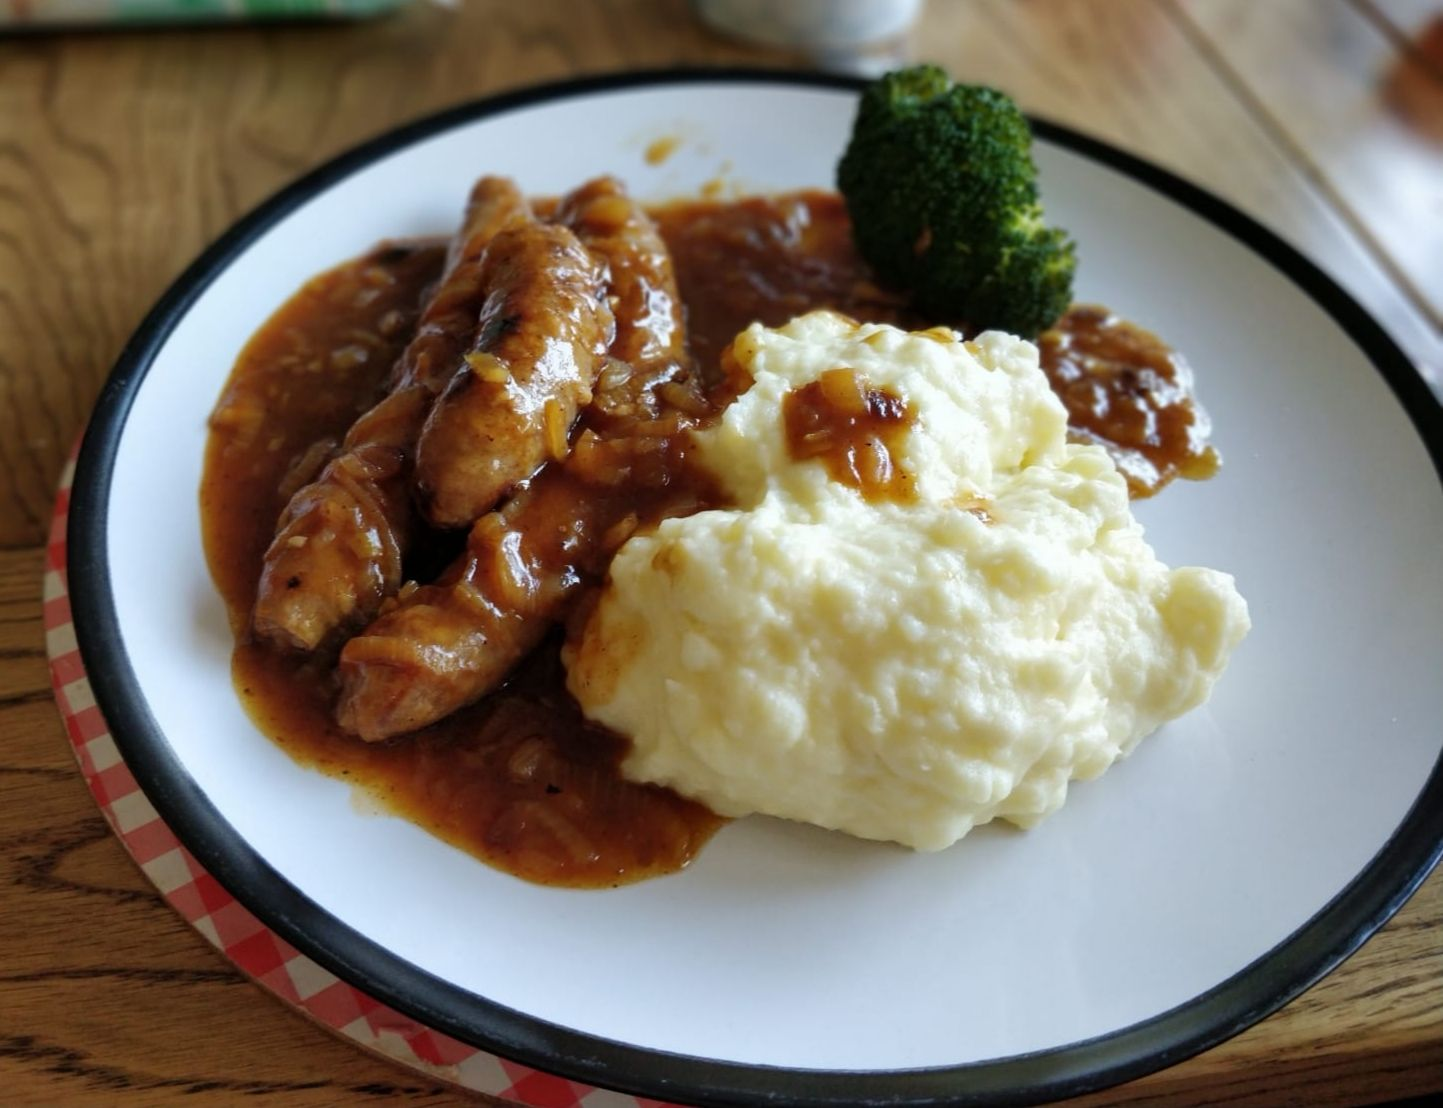 Sausage and mash dish